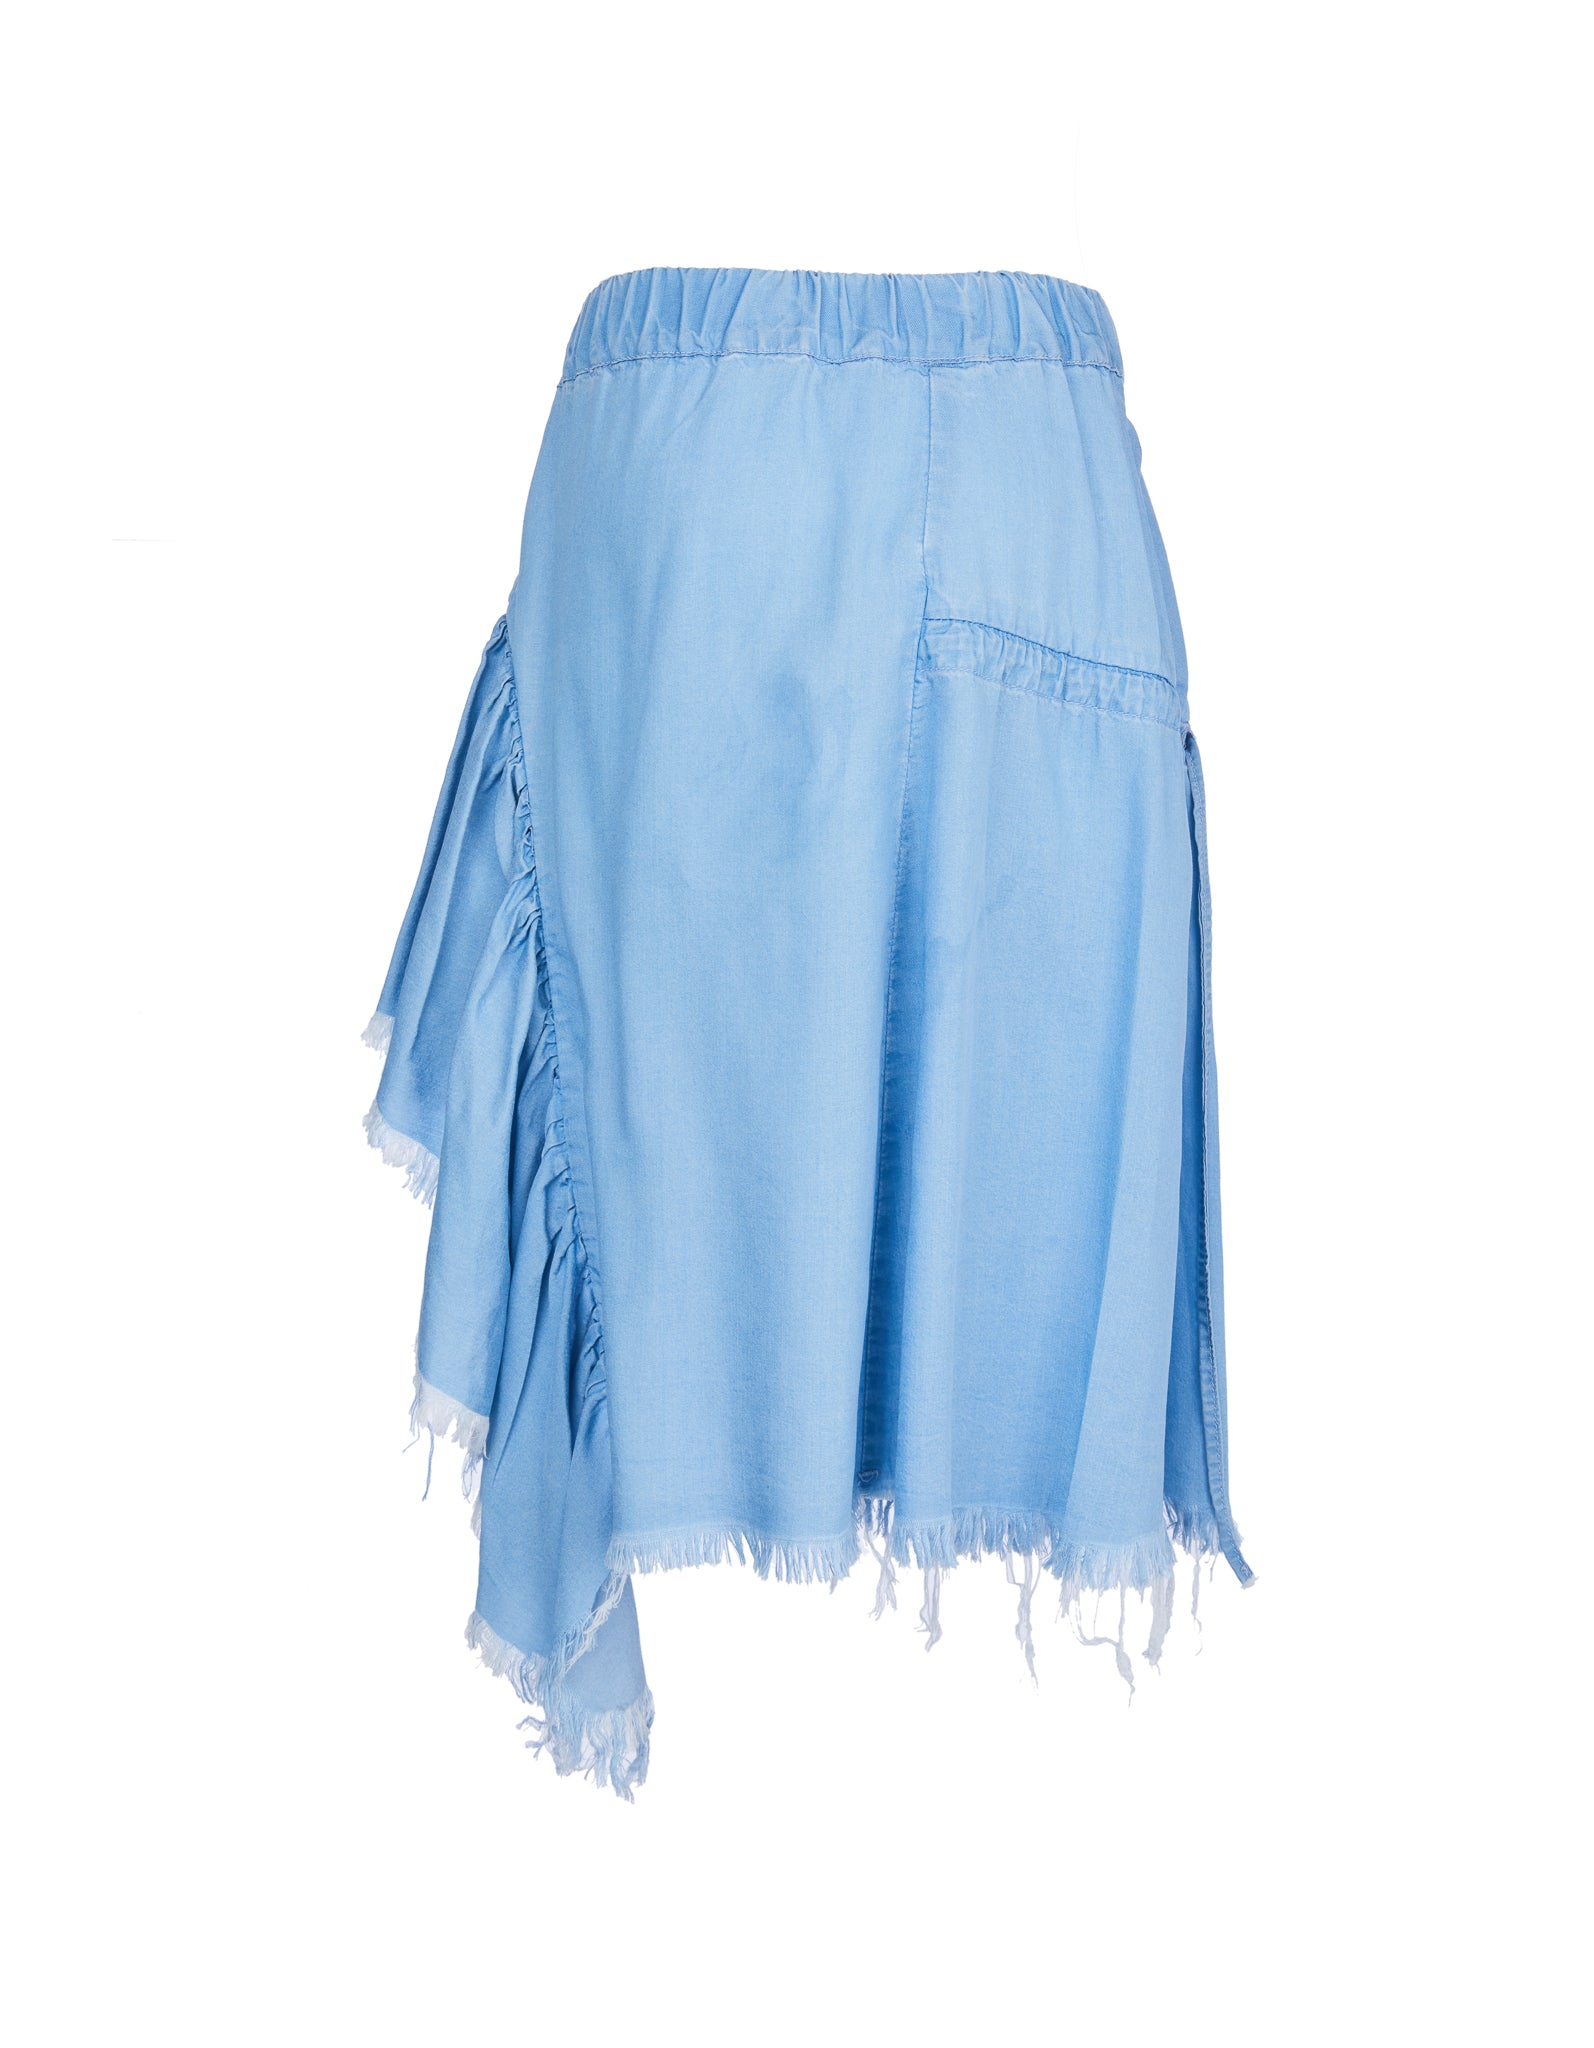 GATHERED SKIRT IN BABY BLUE